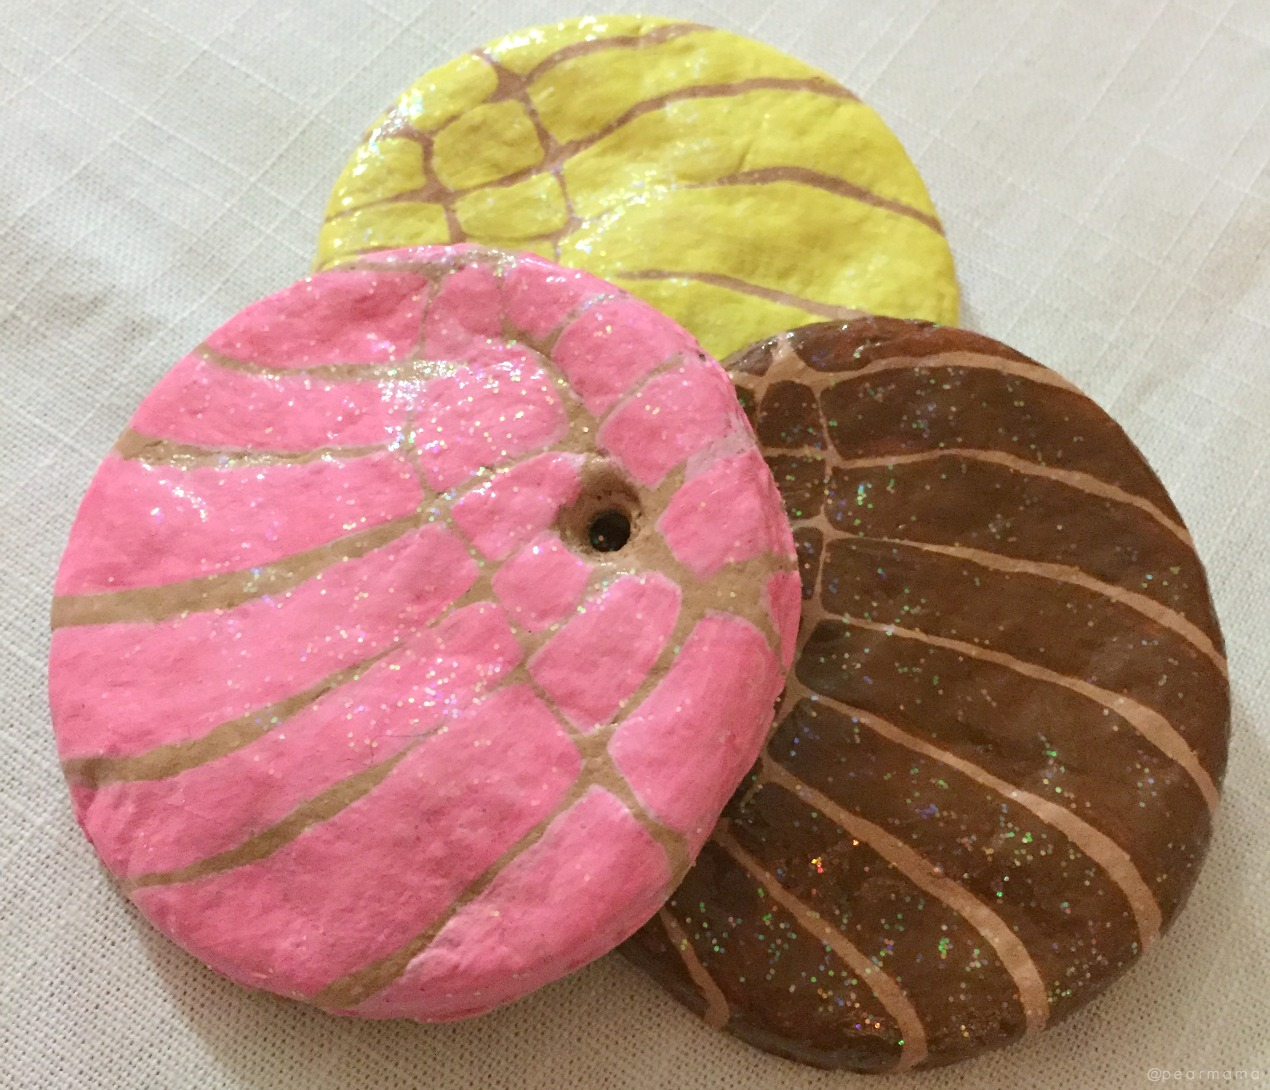 Make salt dough in the shape of everyone's favorite Mexican sweet bread, the concha. This shell-shaped pan dulce makes the cutest Christmas tree ornaments!